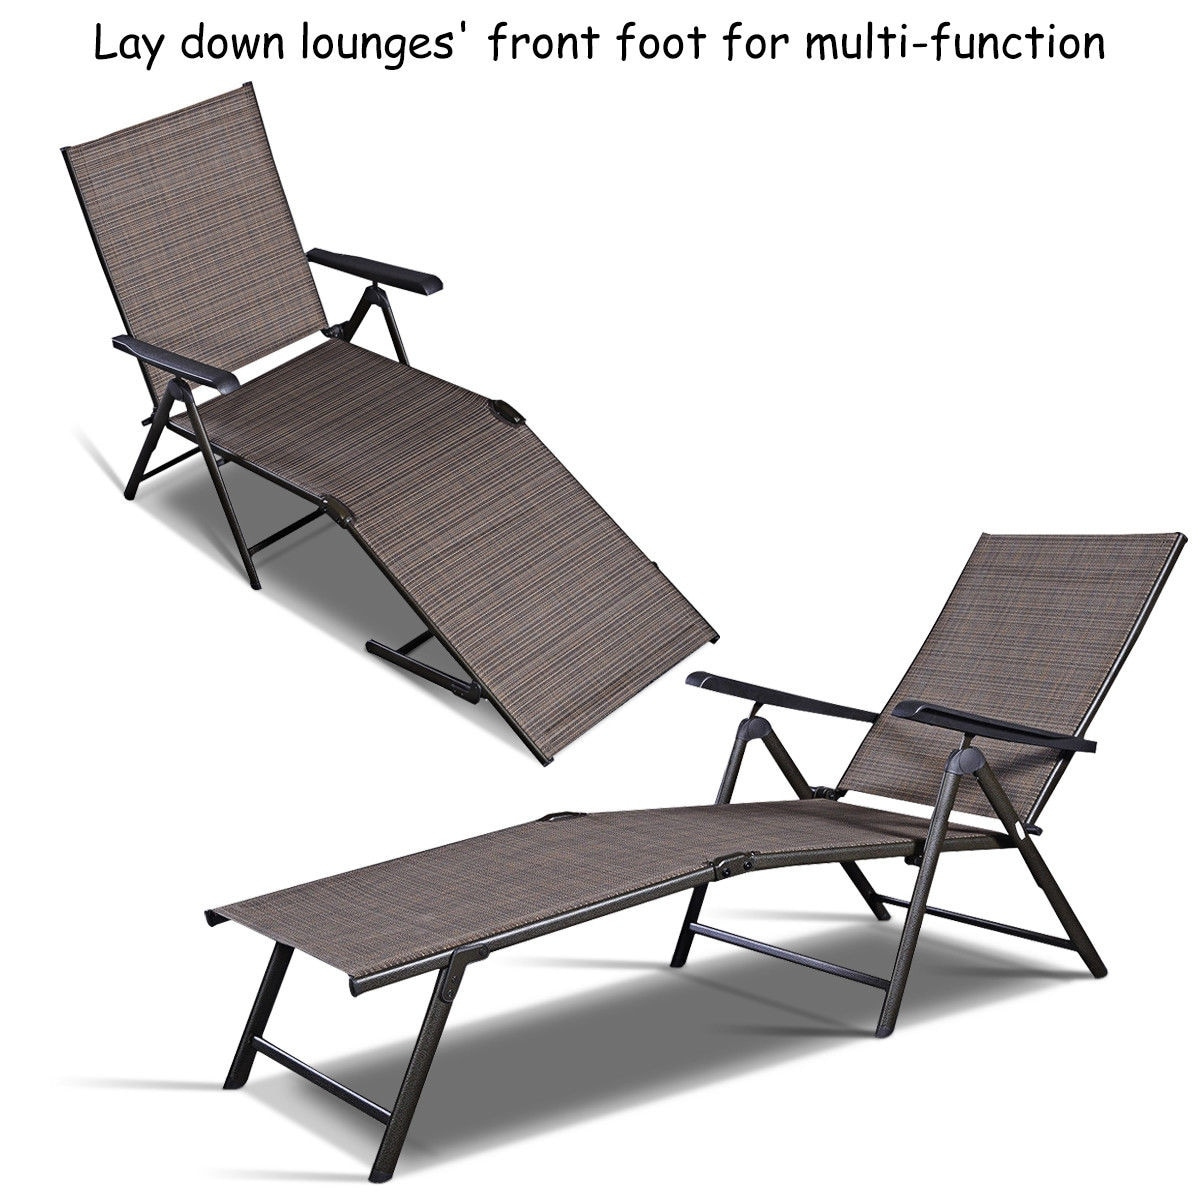 Pool Chaise Lounge Chairs Costway Pool Chaise Lounge Chair Recliner Outdoor Patio Furniture Adjustable